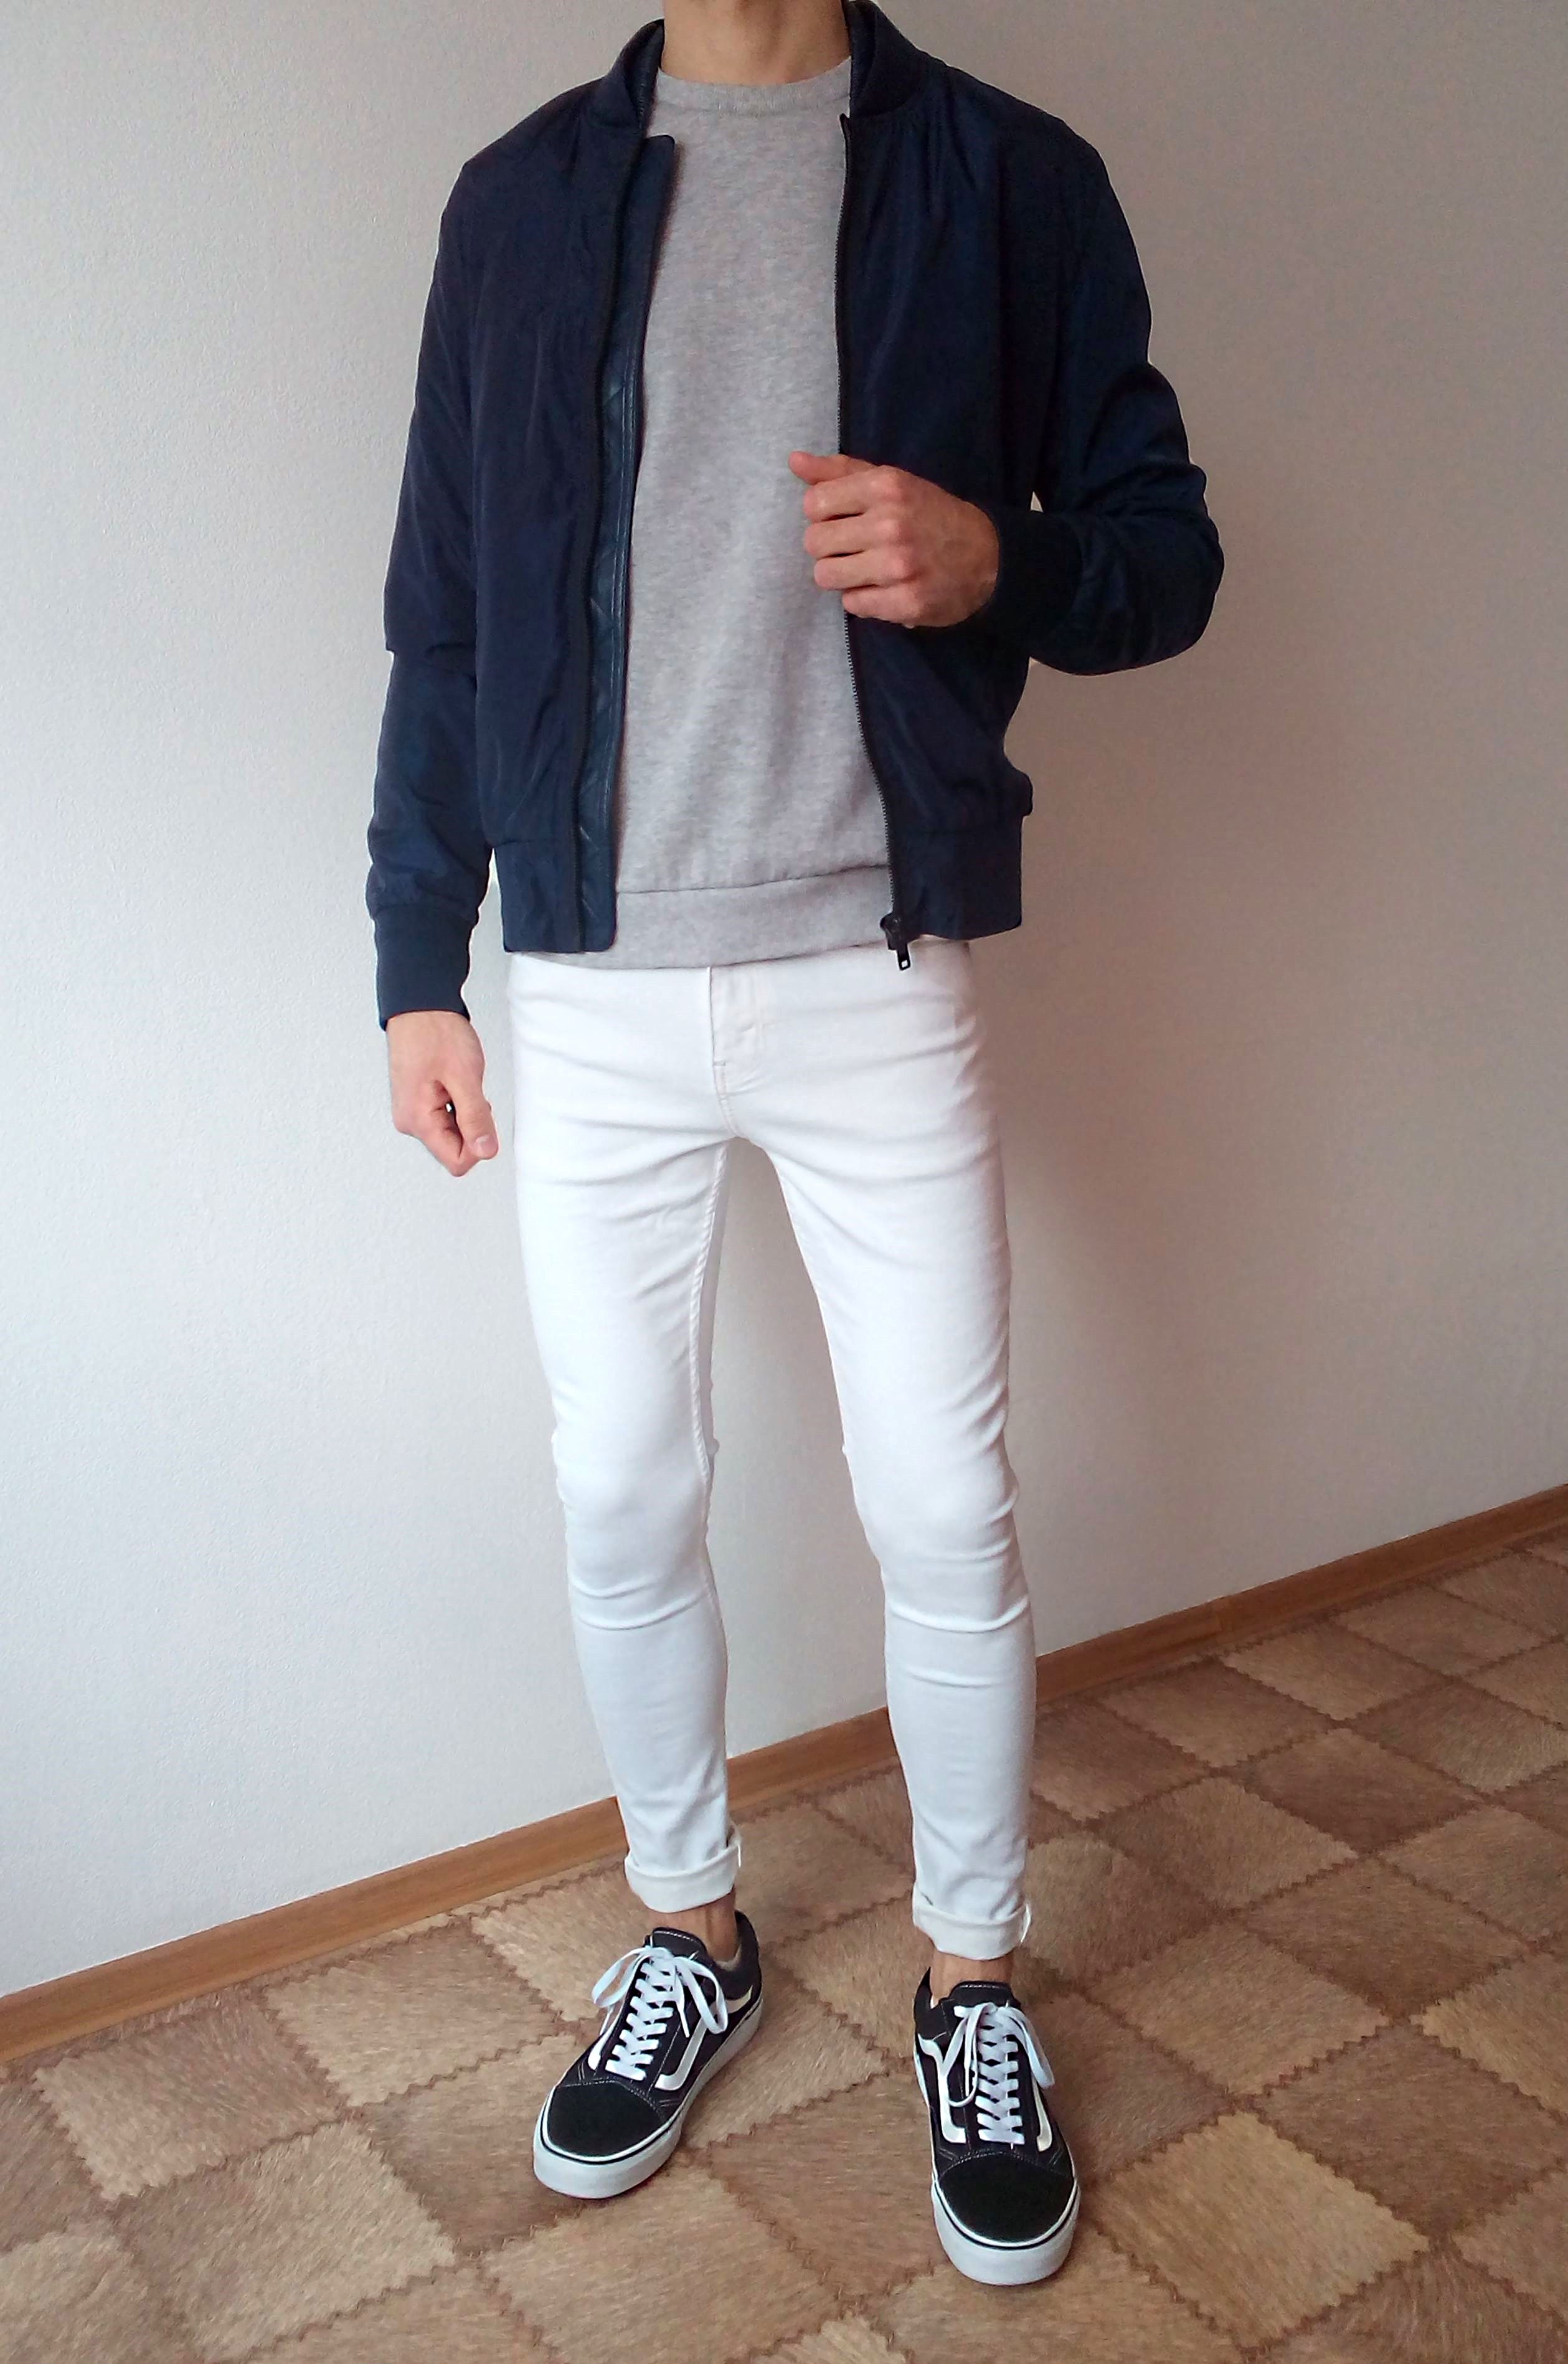 Vans Old Skool White Skinny Jeans Boys Guys Outfit Vans Love Combinar Ropa Hombre Ropa Casual De Hombre Ropa Hipster Hombre